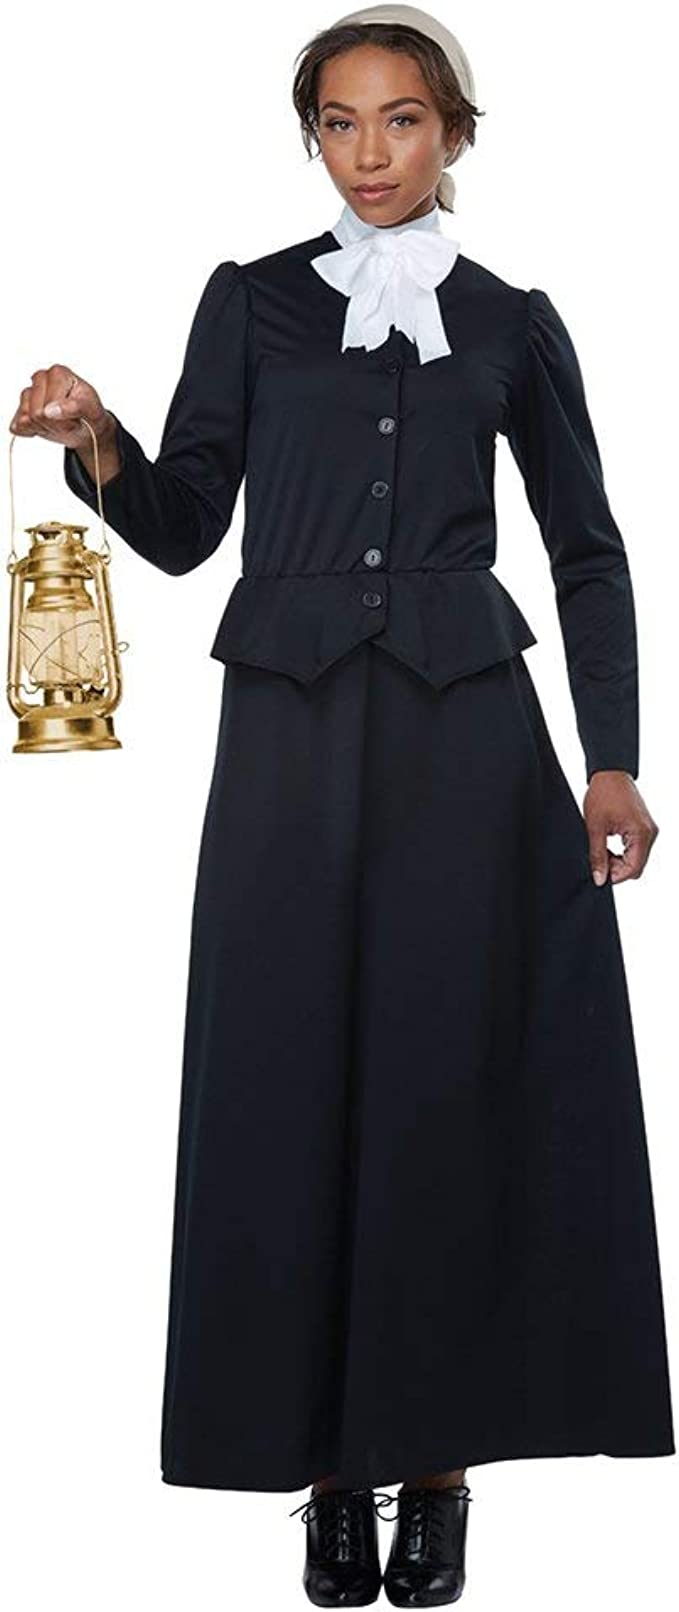 1900s, 1910s, WW1, Titanic Costumes California Costumes Womens Susan B. Anthony - Harriet Tubman - Adult Costume Adult Costume Black/White Small $41.88 AT vintagedancer.com